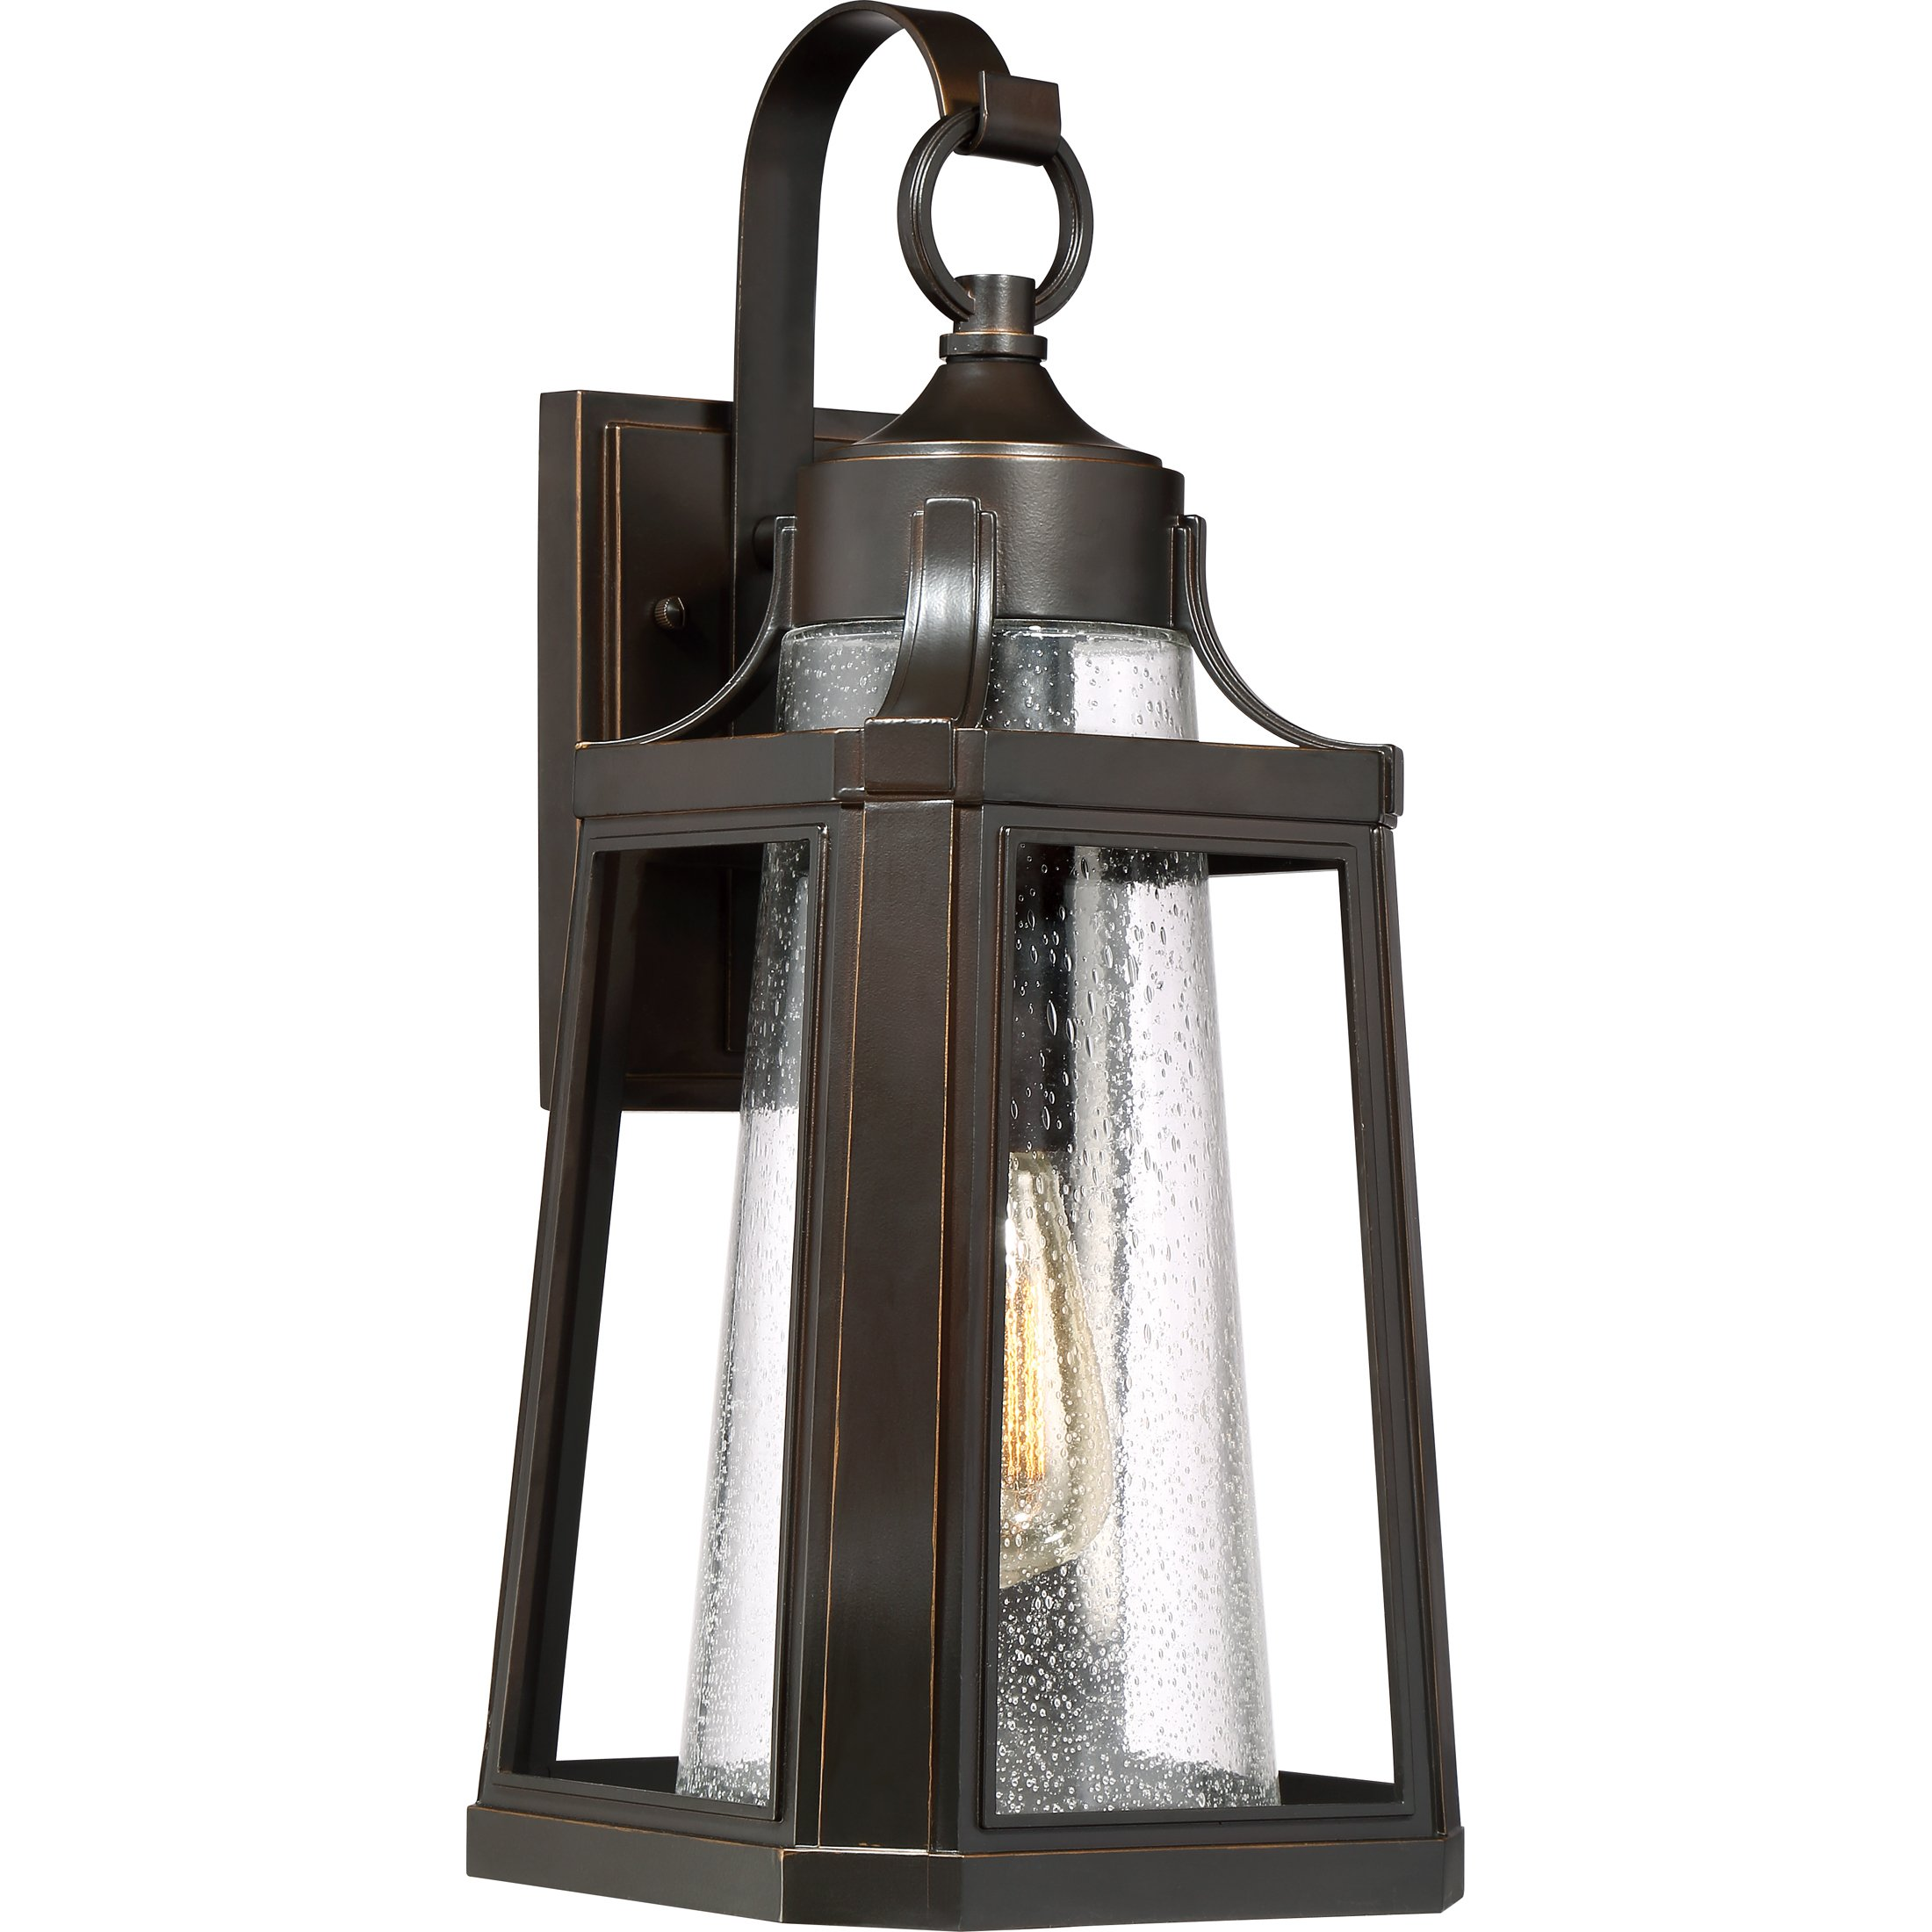 Quoizel One Light Outdoor Wall Lantern LTE8409PN, Large, Palladian Bronze by Quoizel